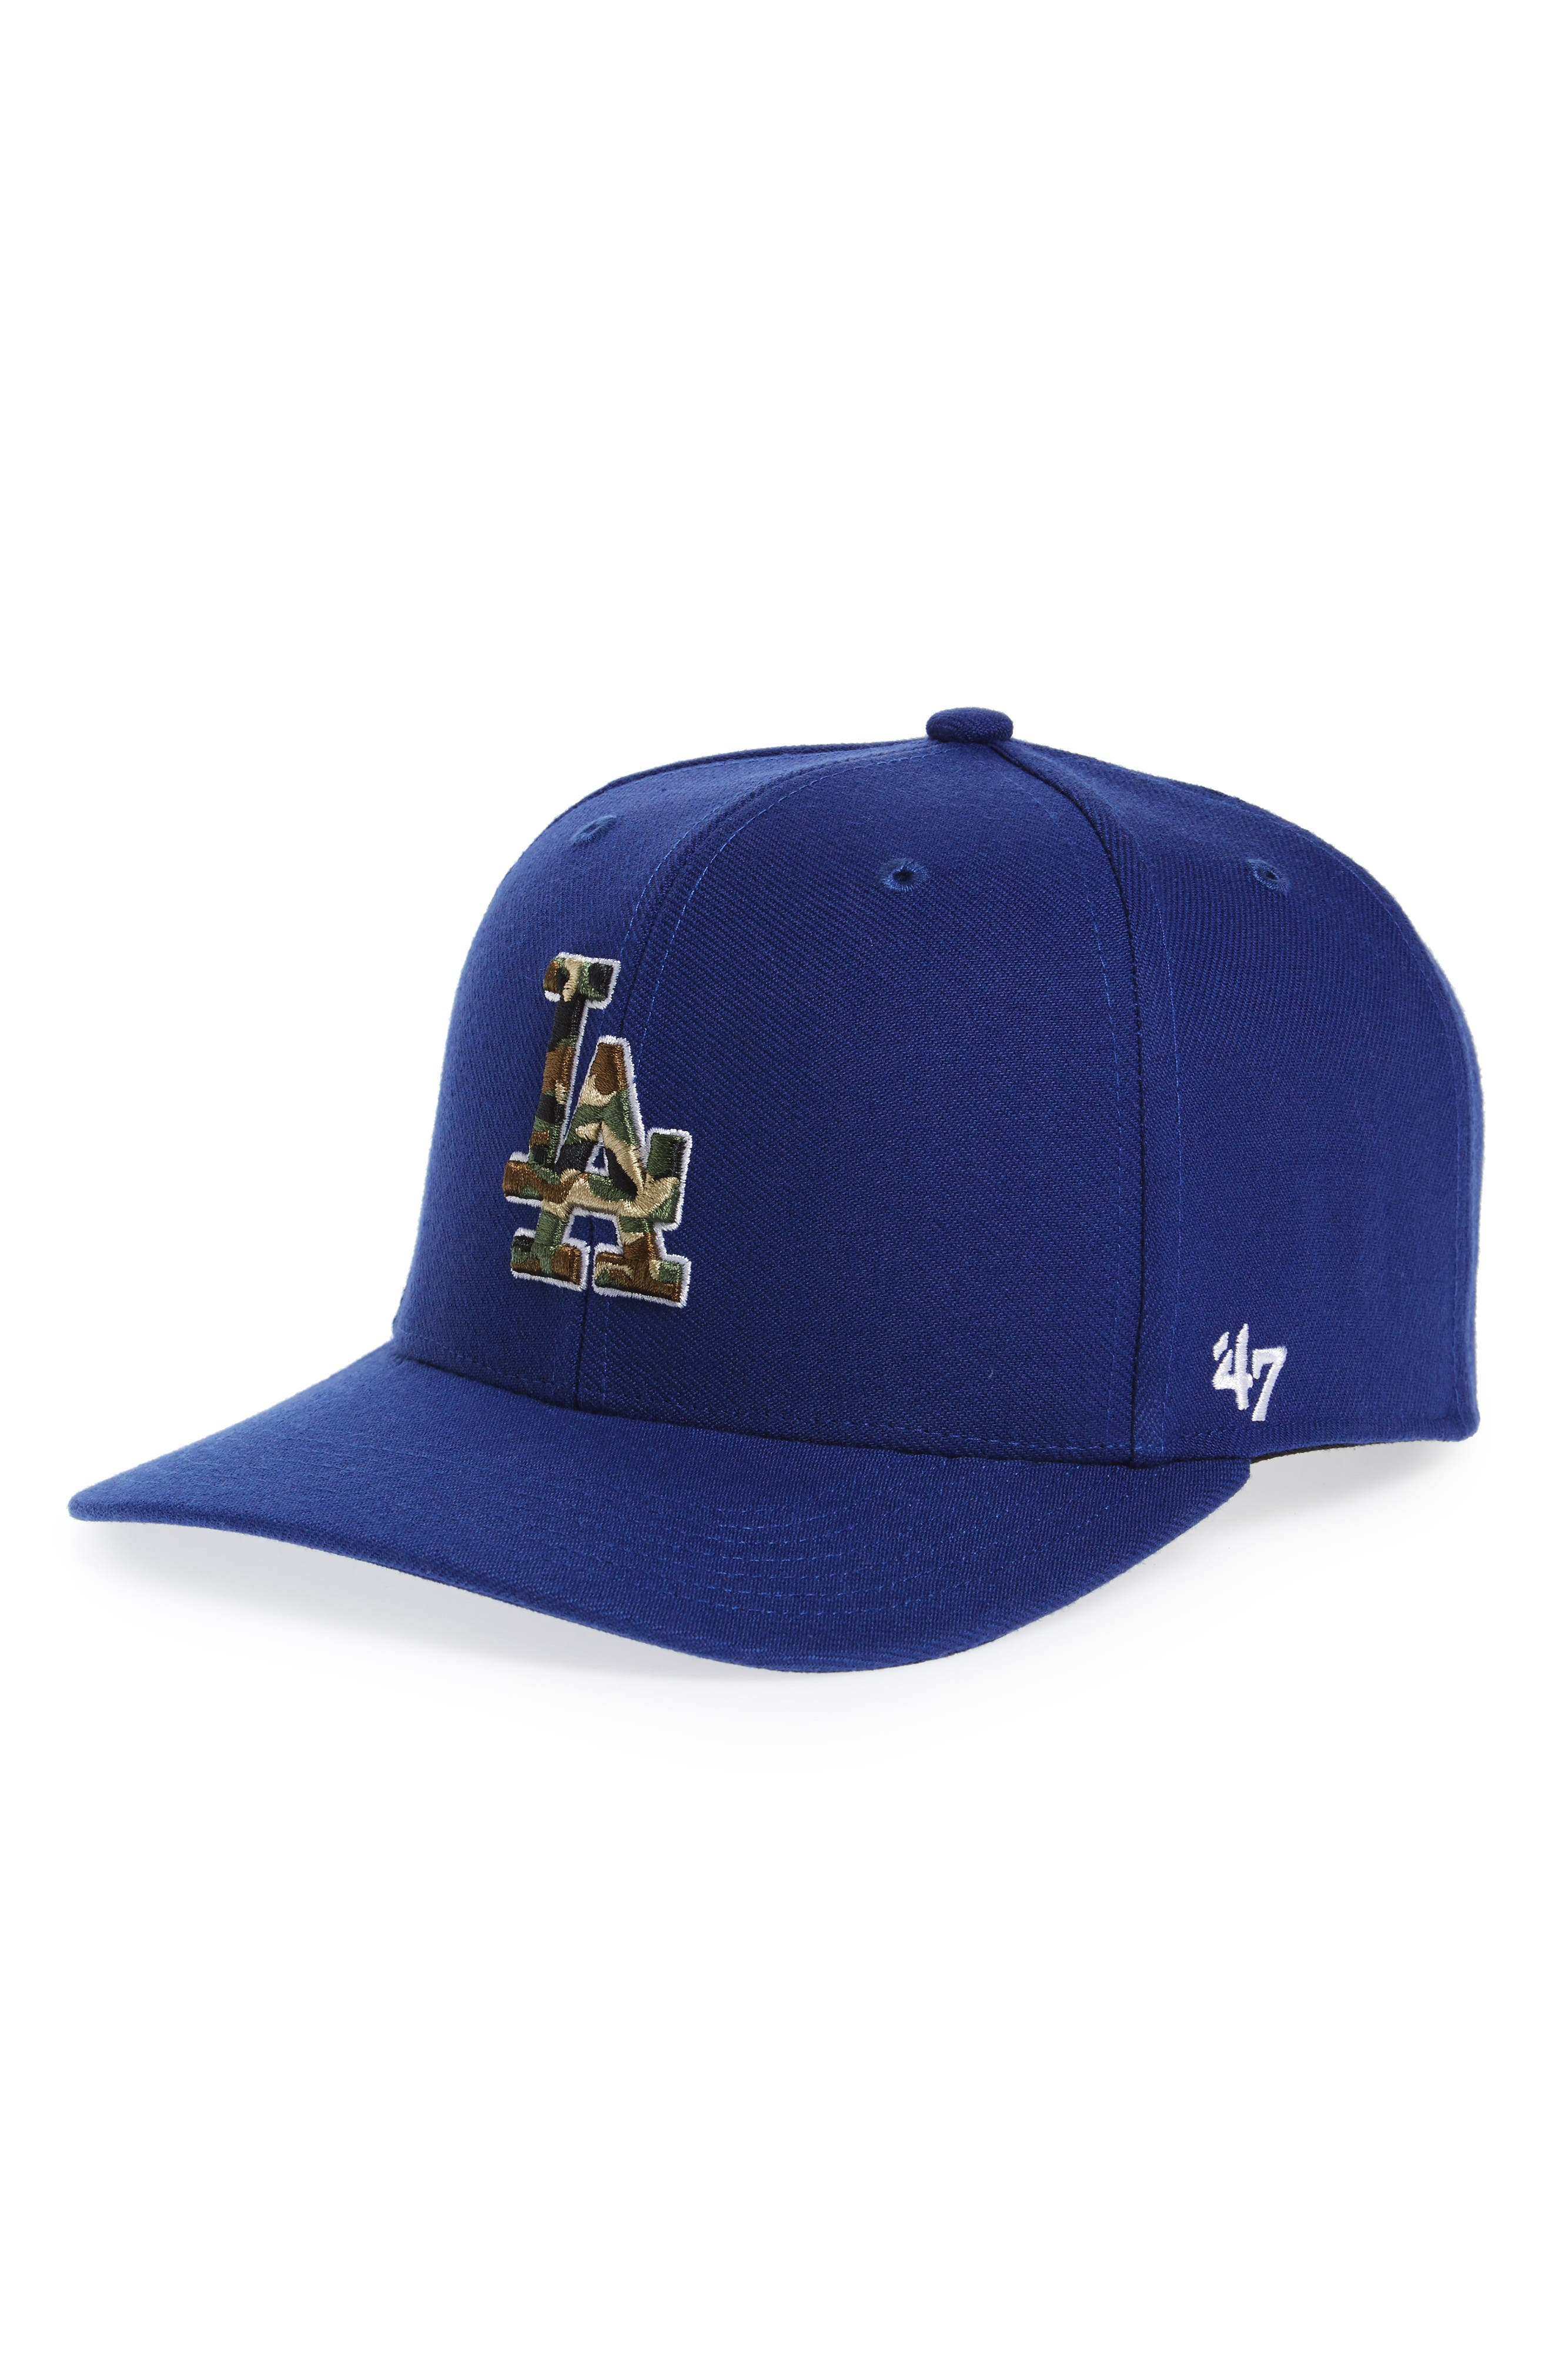 Los Angeles Dodgers - Camouflage Baseball Cap,                         Main,                         color,